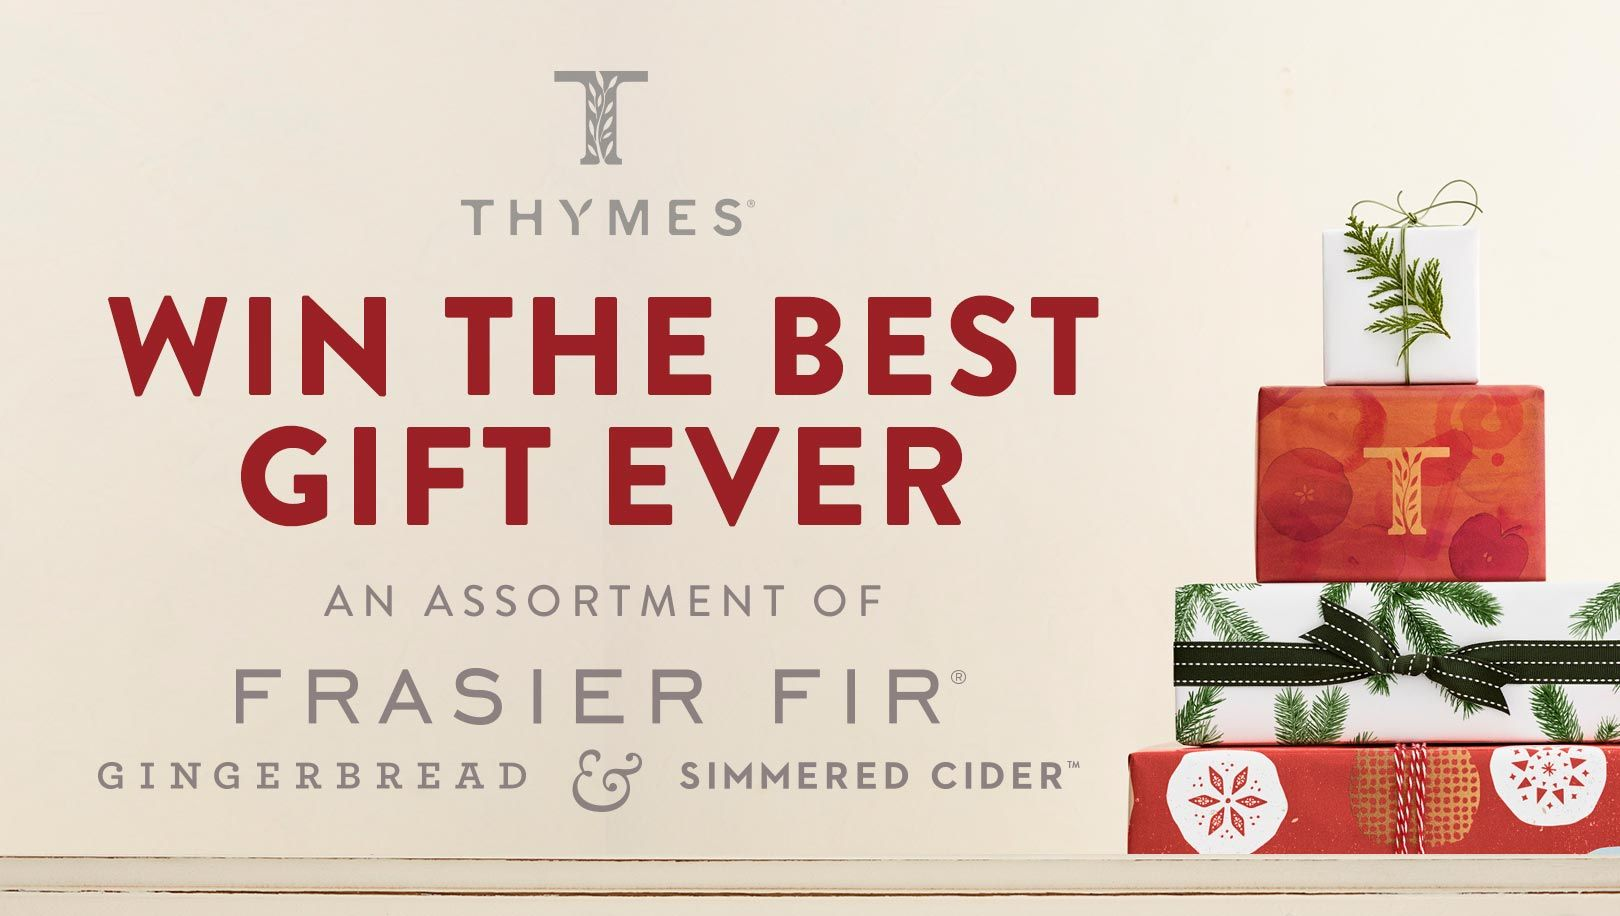 Enter to win amazing home fragrance products from Thymes. Collection of products include fragrances like  Frasier Fir, Simmered Cider and Gingerbread with a retail value of over $370!